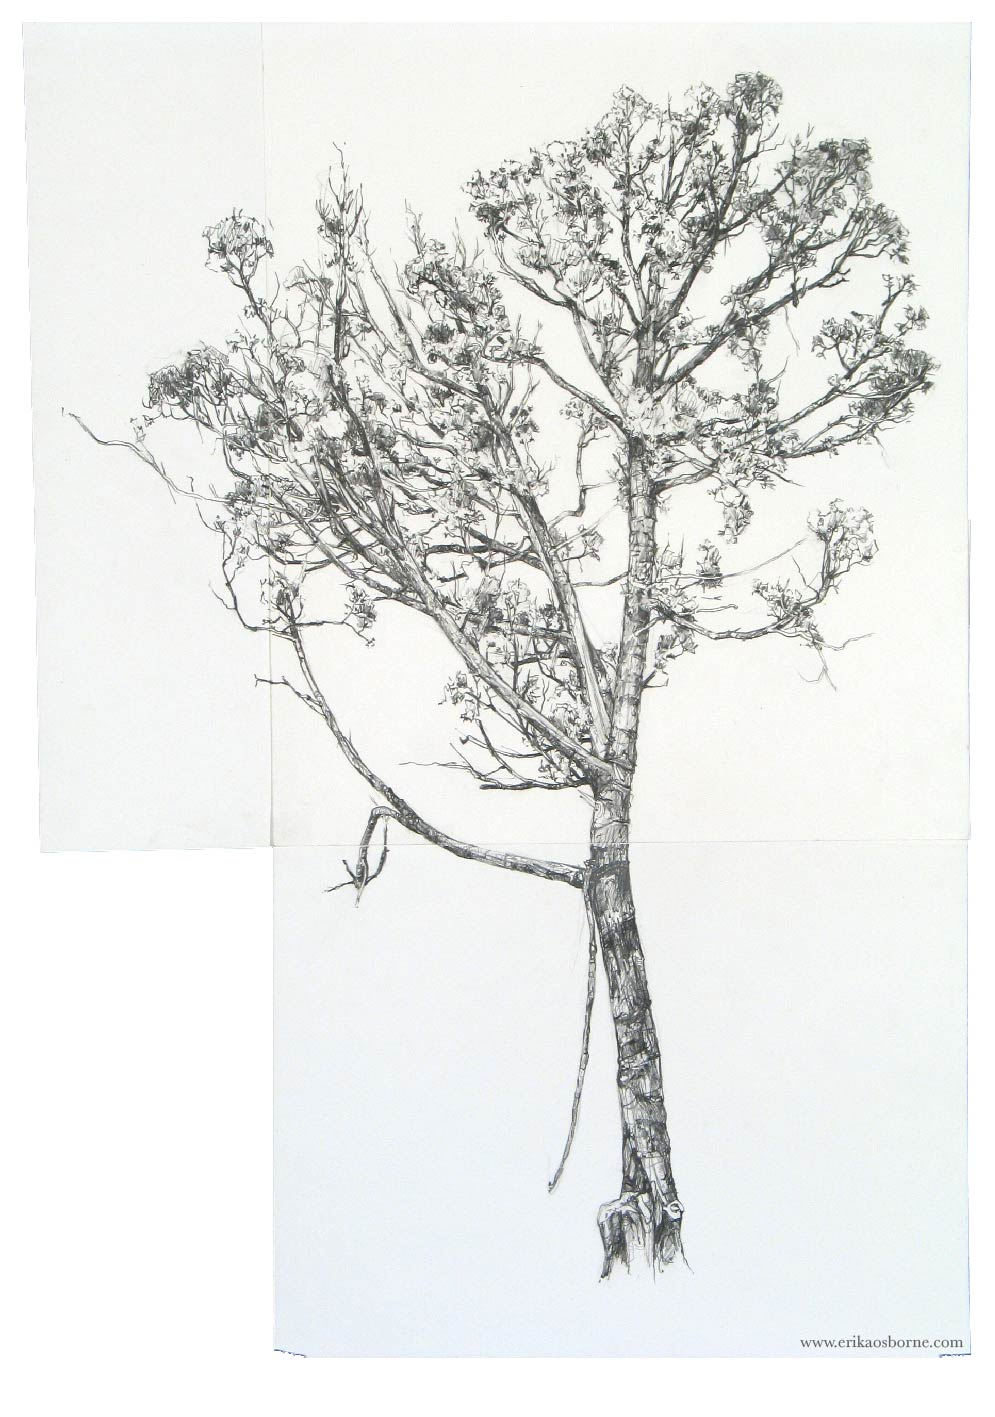 9 hours drawing jumping to keep toes warm these trees are marked for cutting a fuel break maybe in spring - Tree Drawings